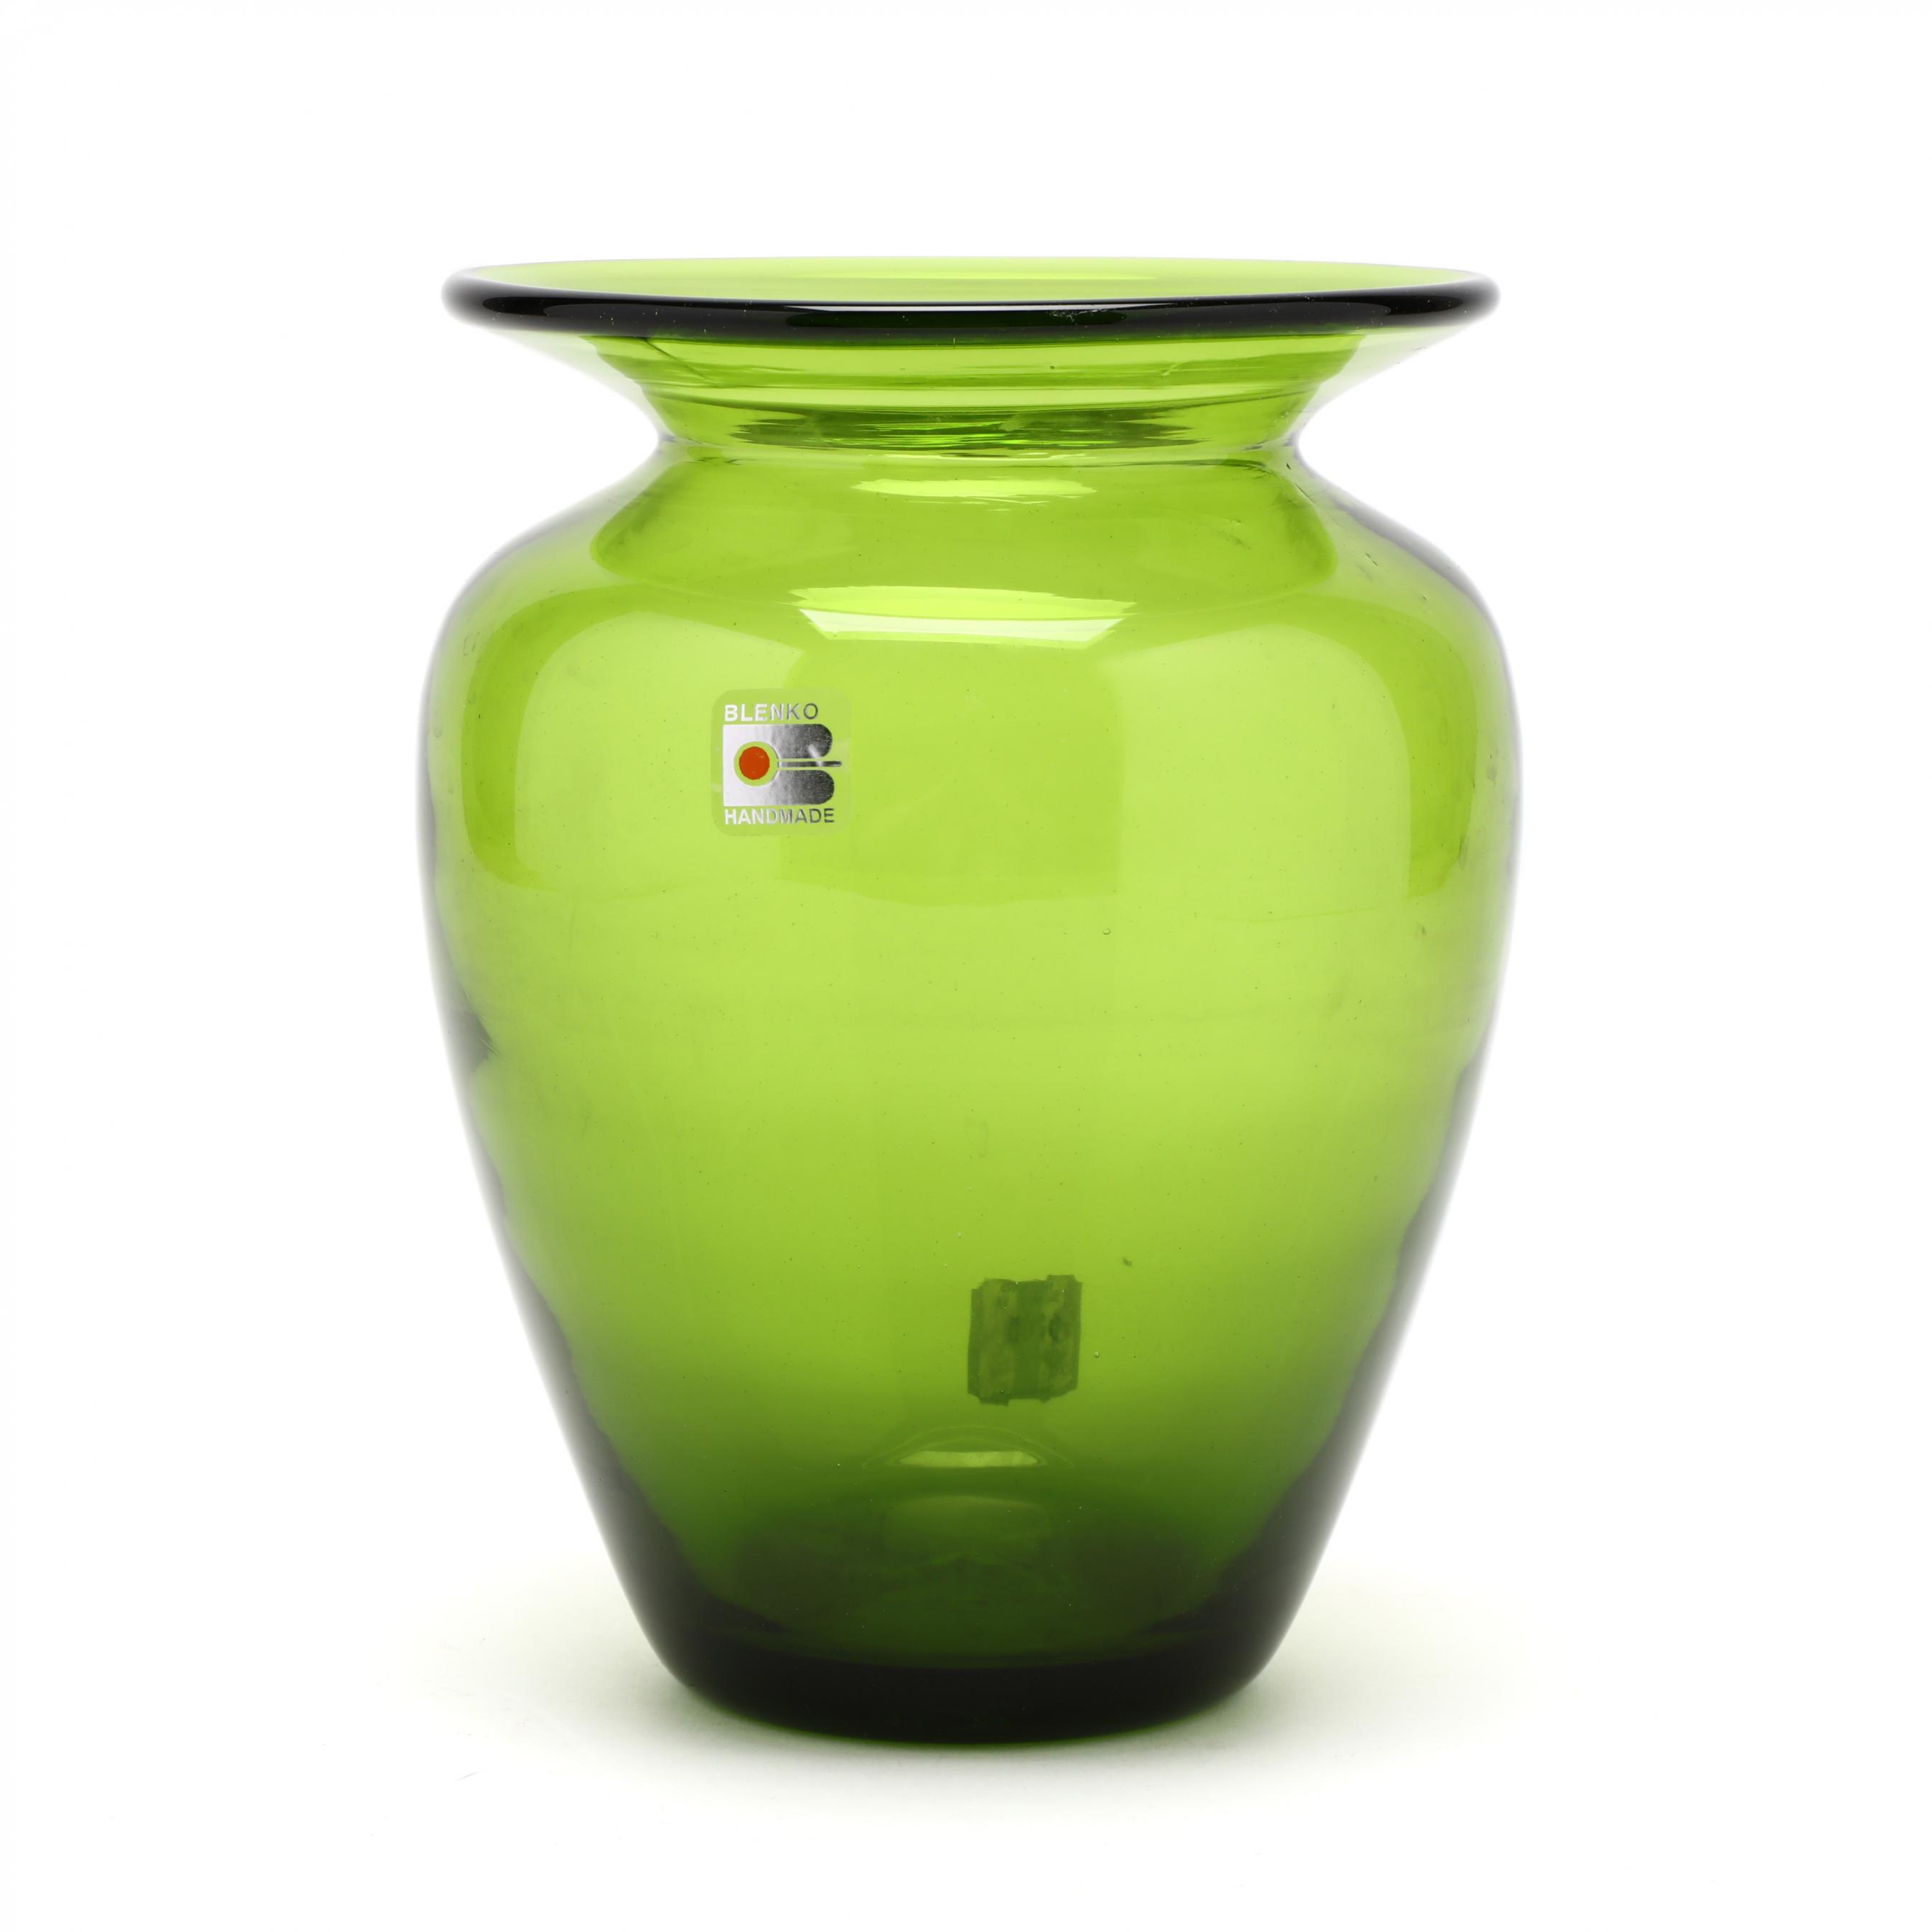 blenko-modern-baluster-glass-vase